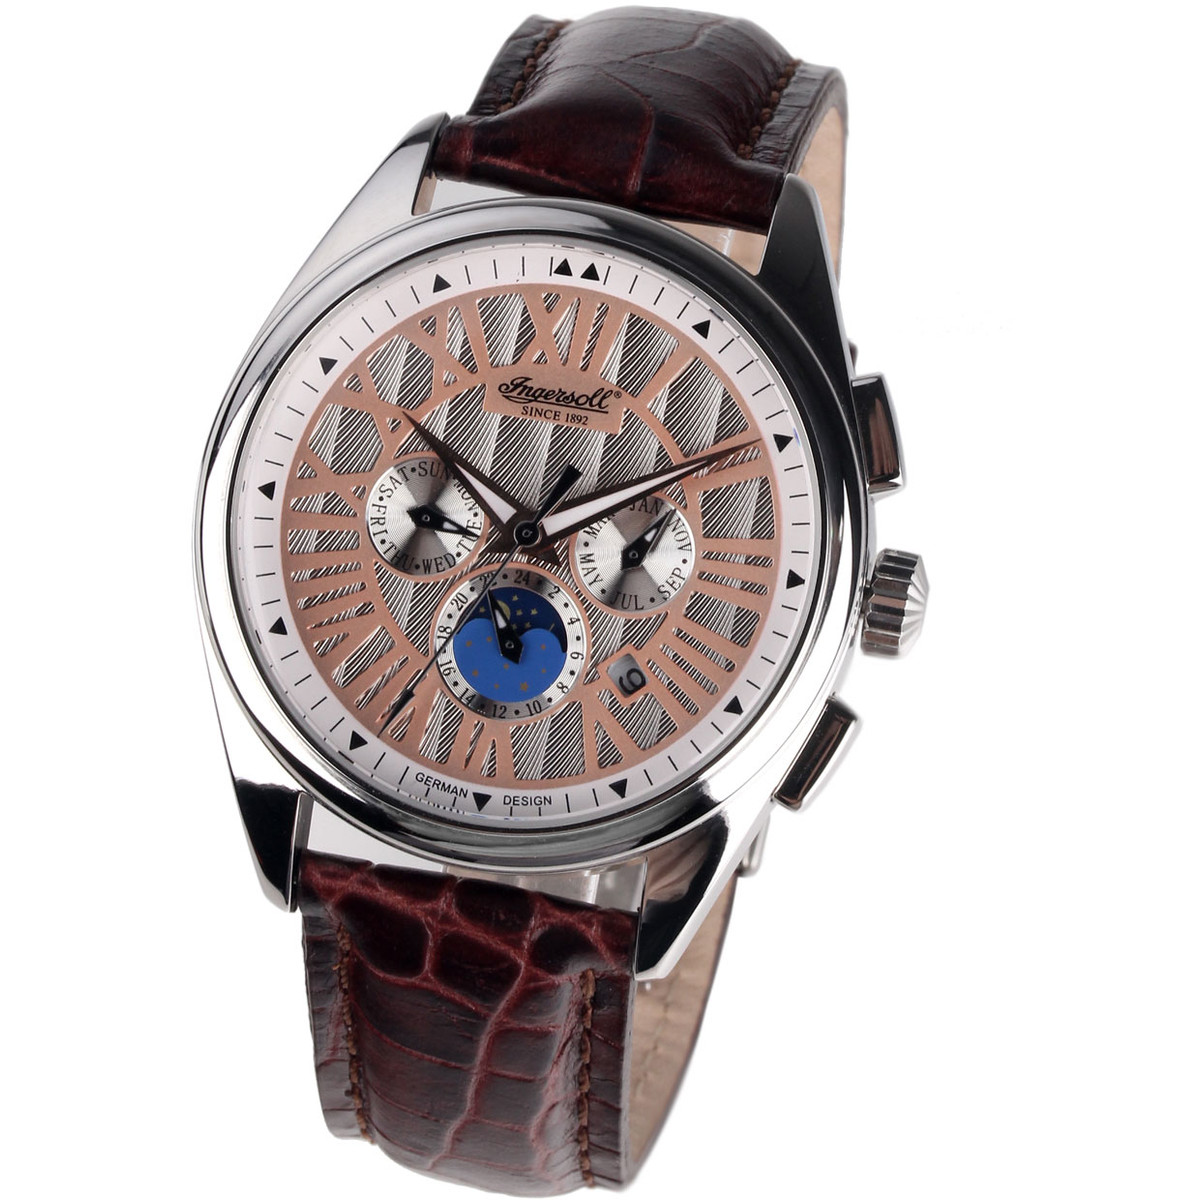 Ceas barbatesc Ingersoll Baltimore Automatic IN4101WH de mana original